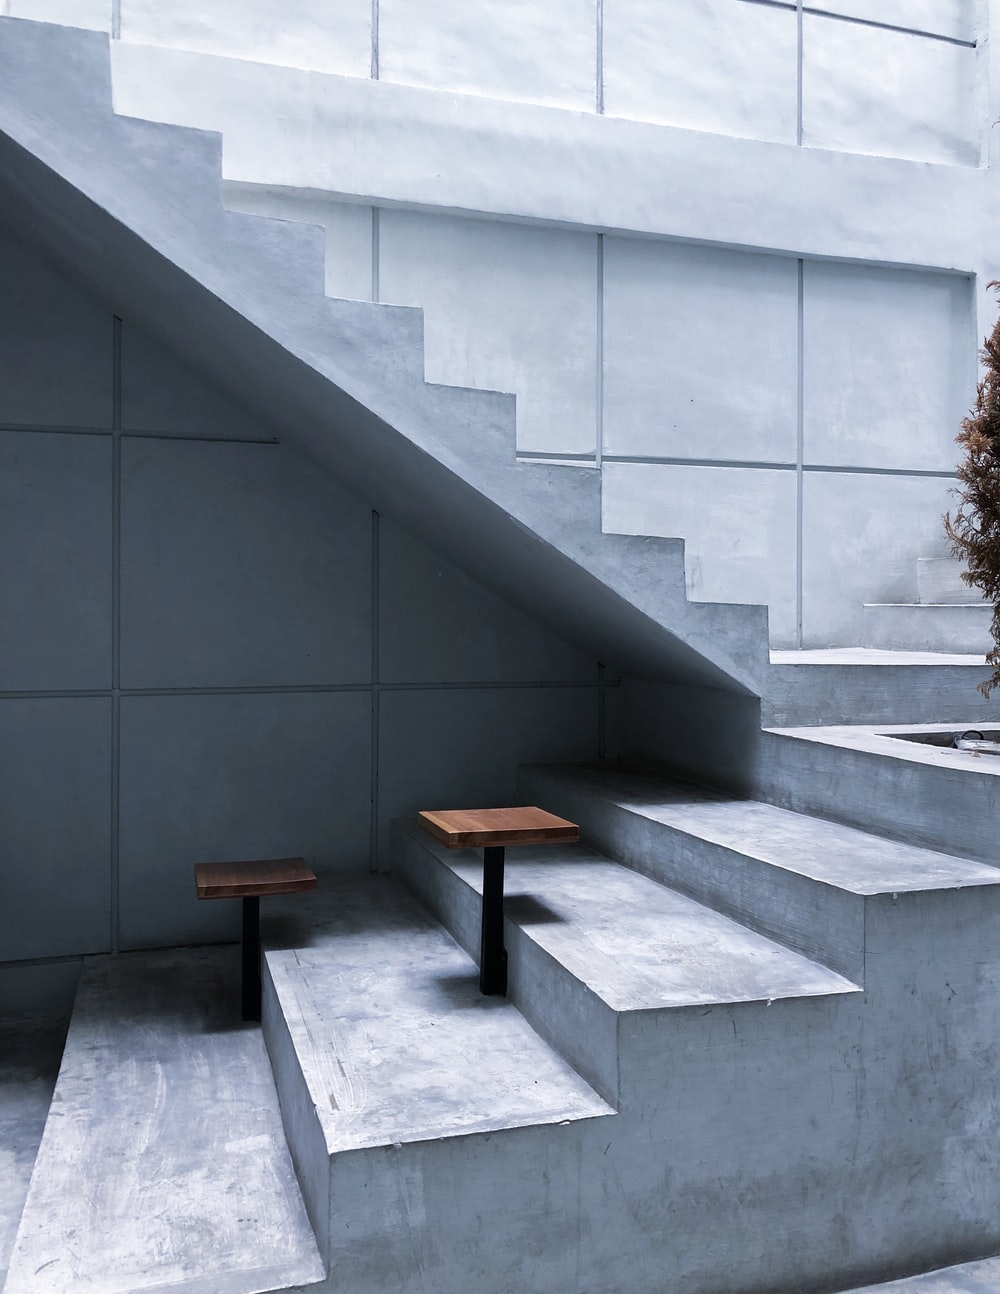 brown wooden table on gray concrete stairs